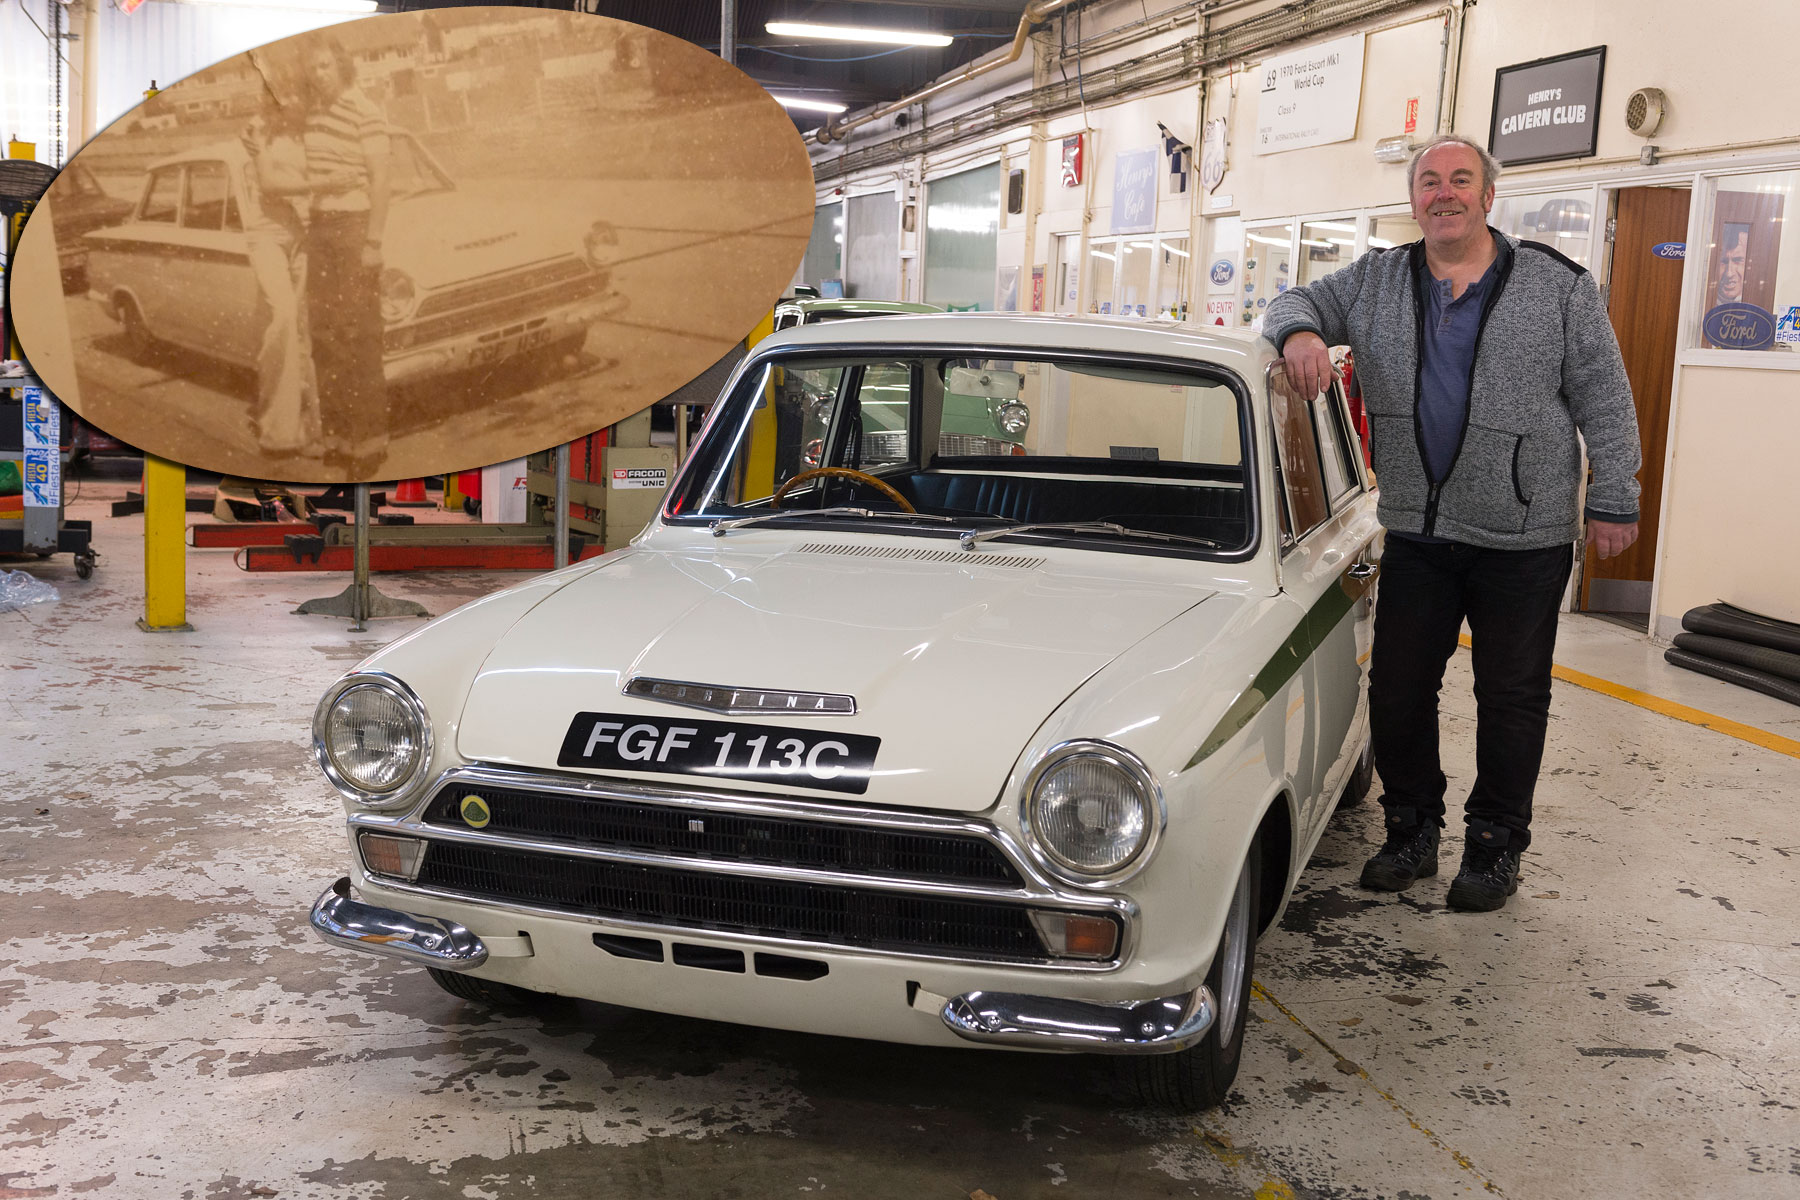 We reunite Ford Lotus Cortina TV star with its owner after 40 years